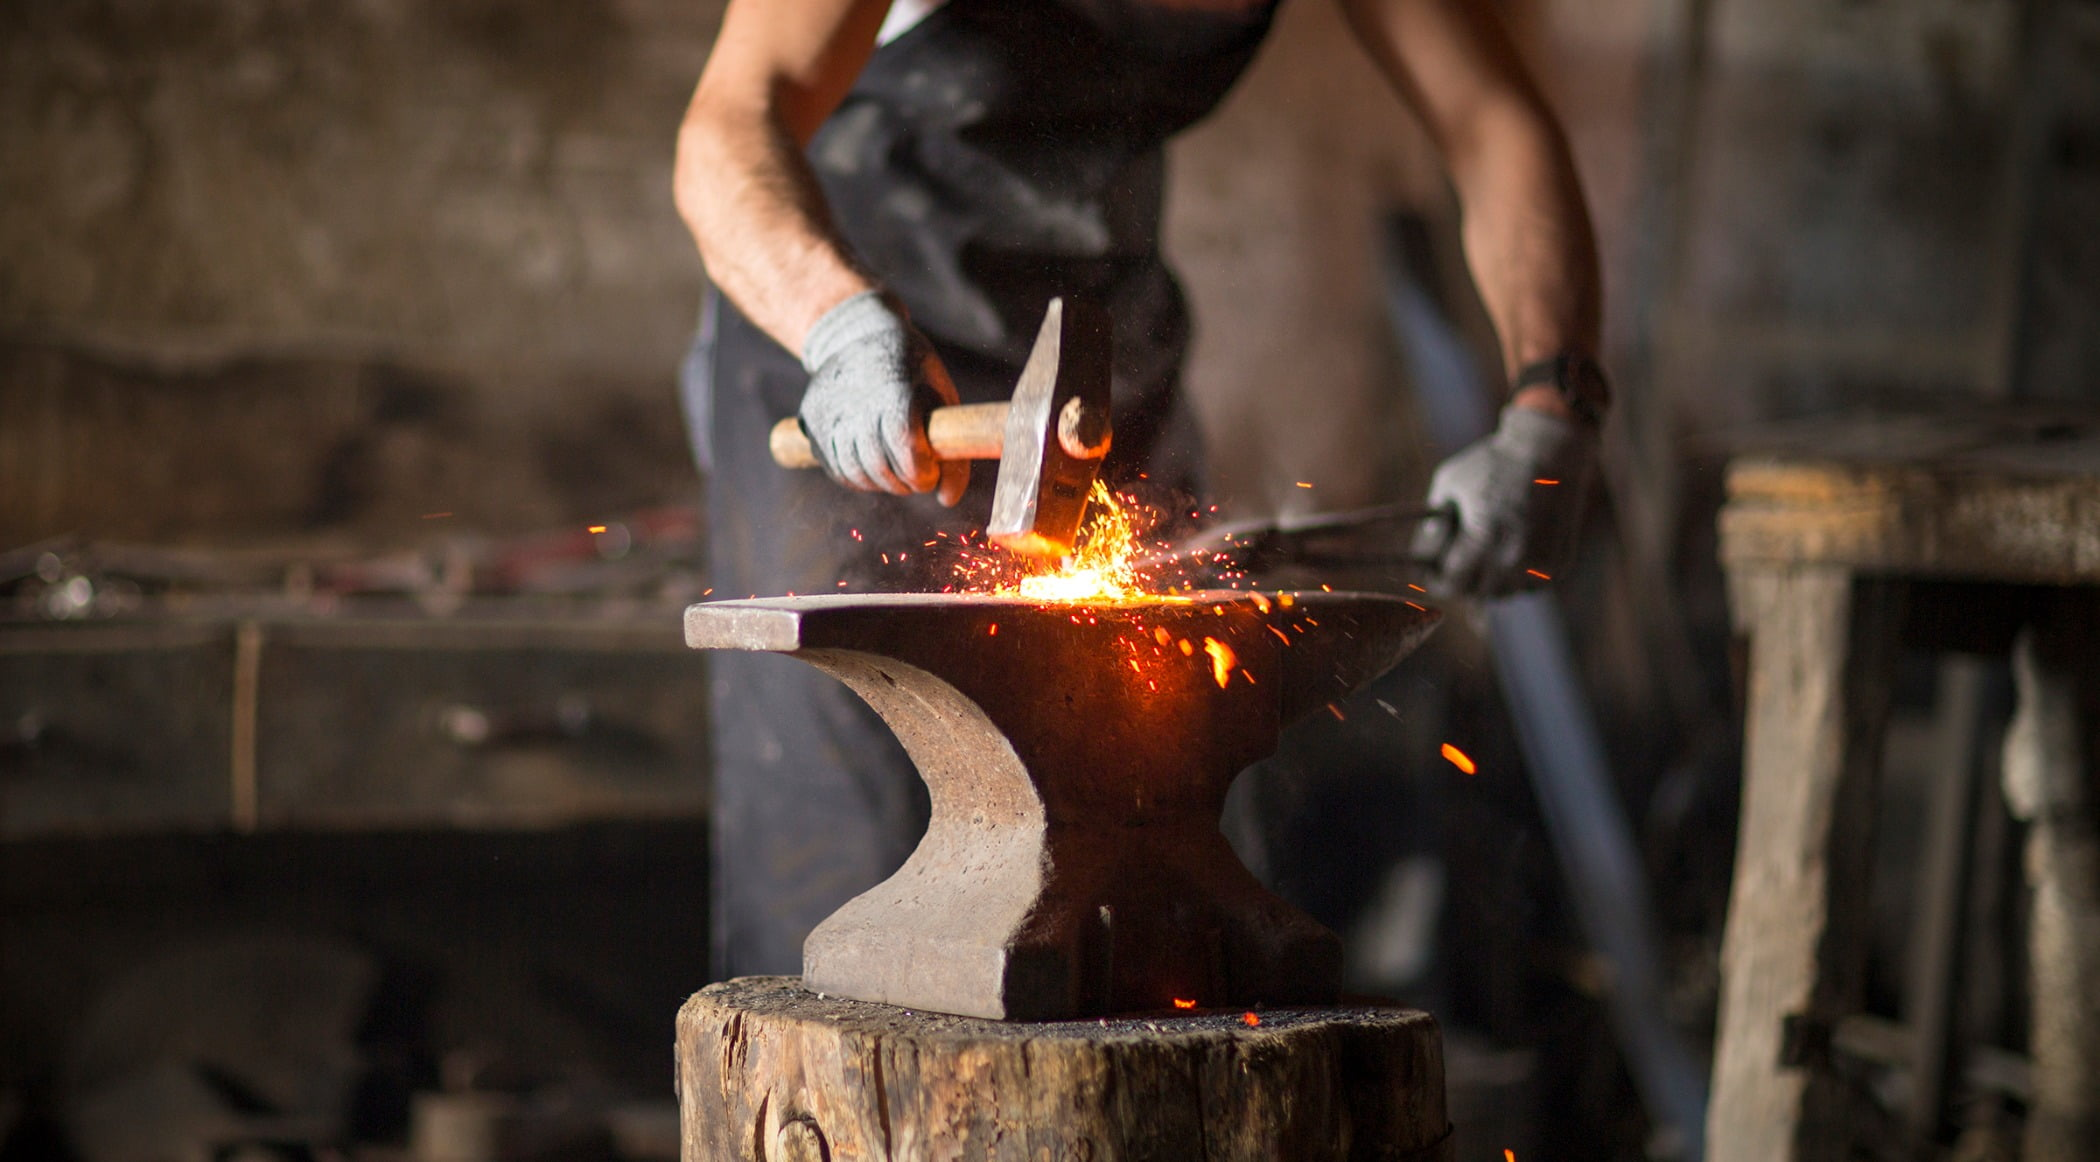 Muscle, Metalworking, Fire, Flame